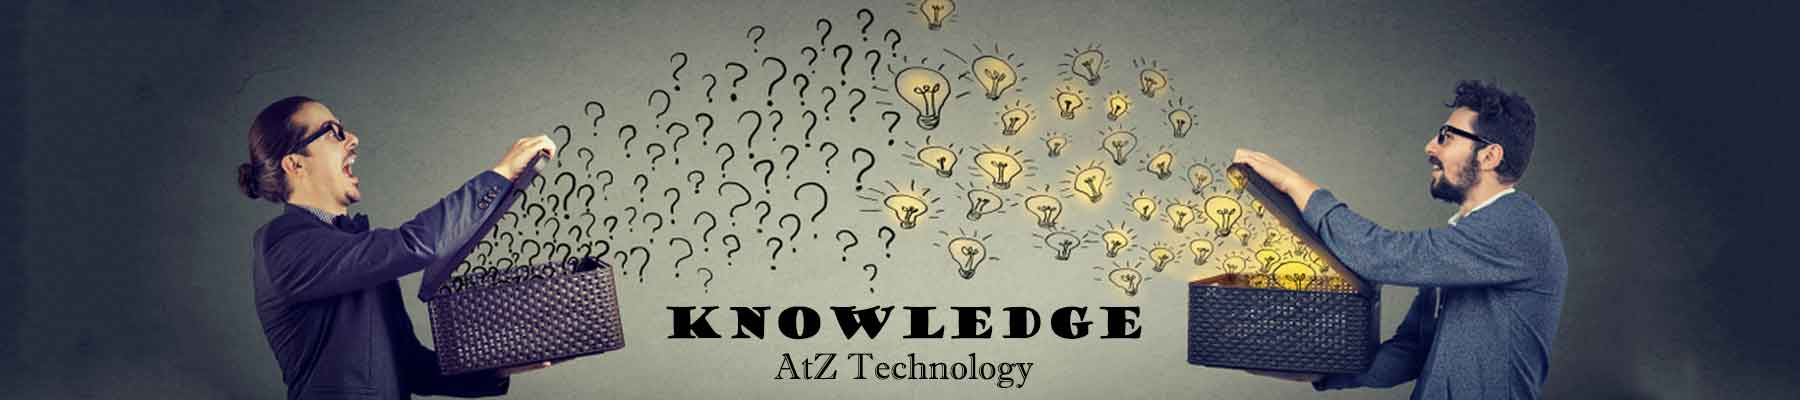 Technology Knowledge